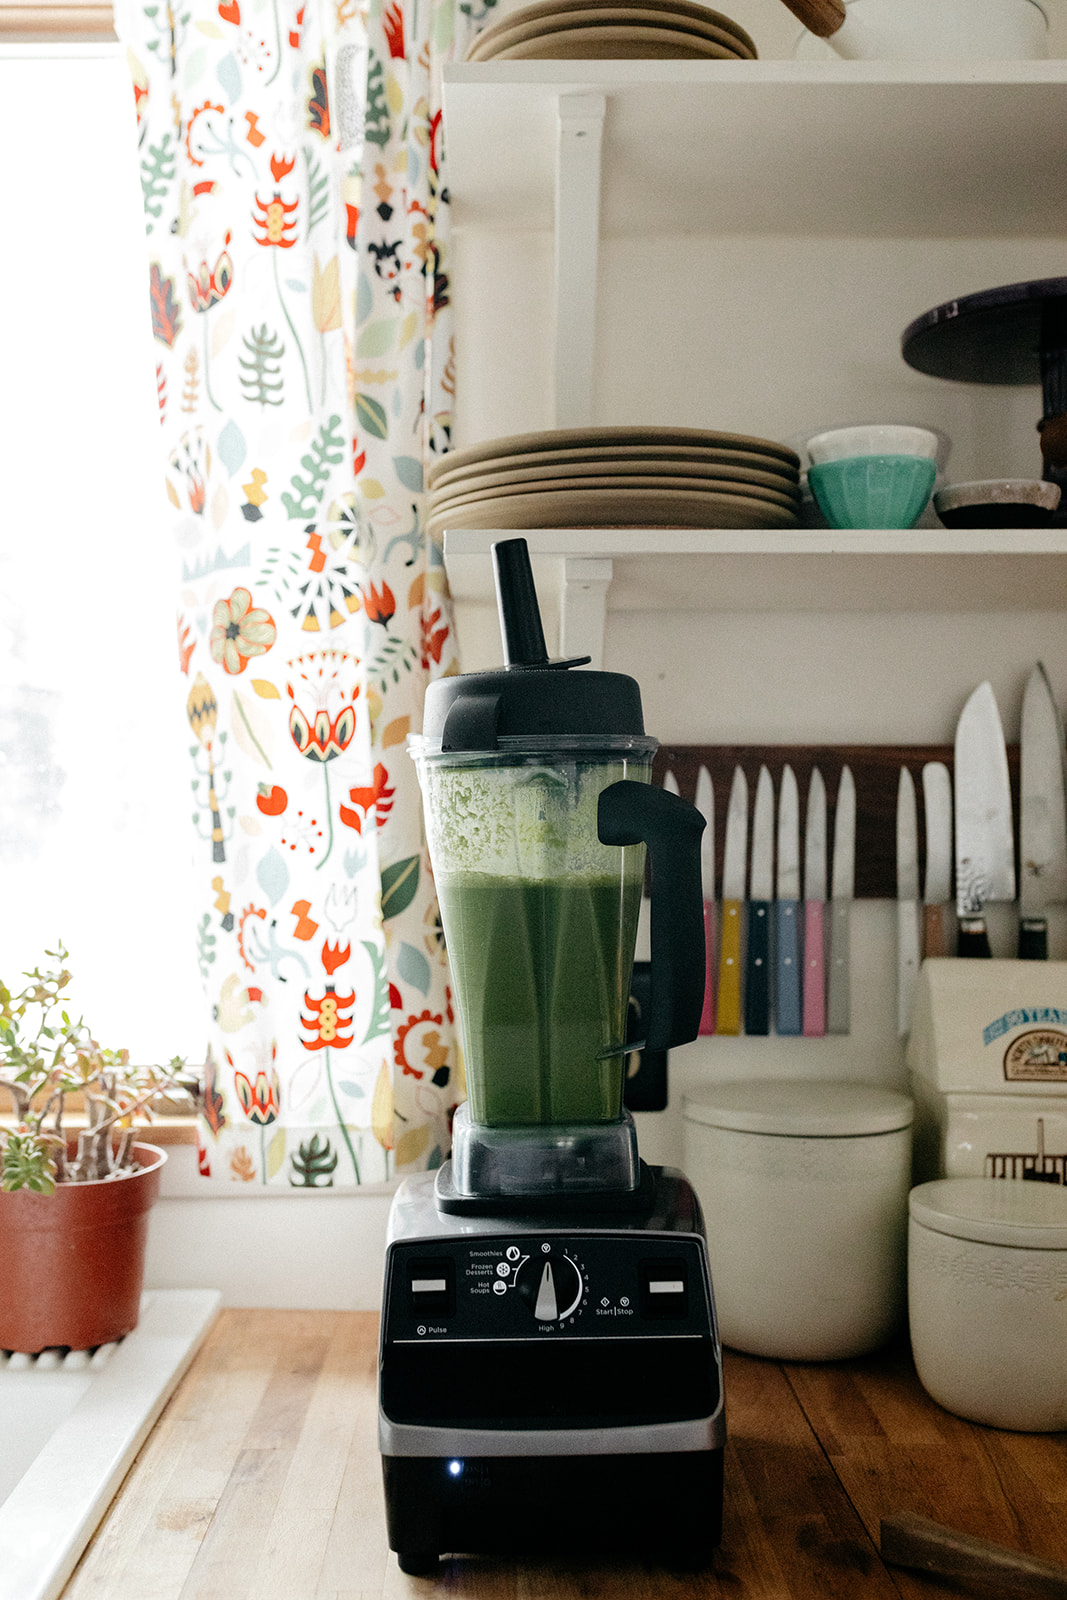 1-10-19-molly-yeh-green-smoothie-2.jpg